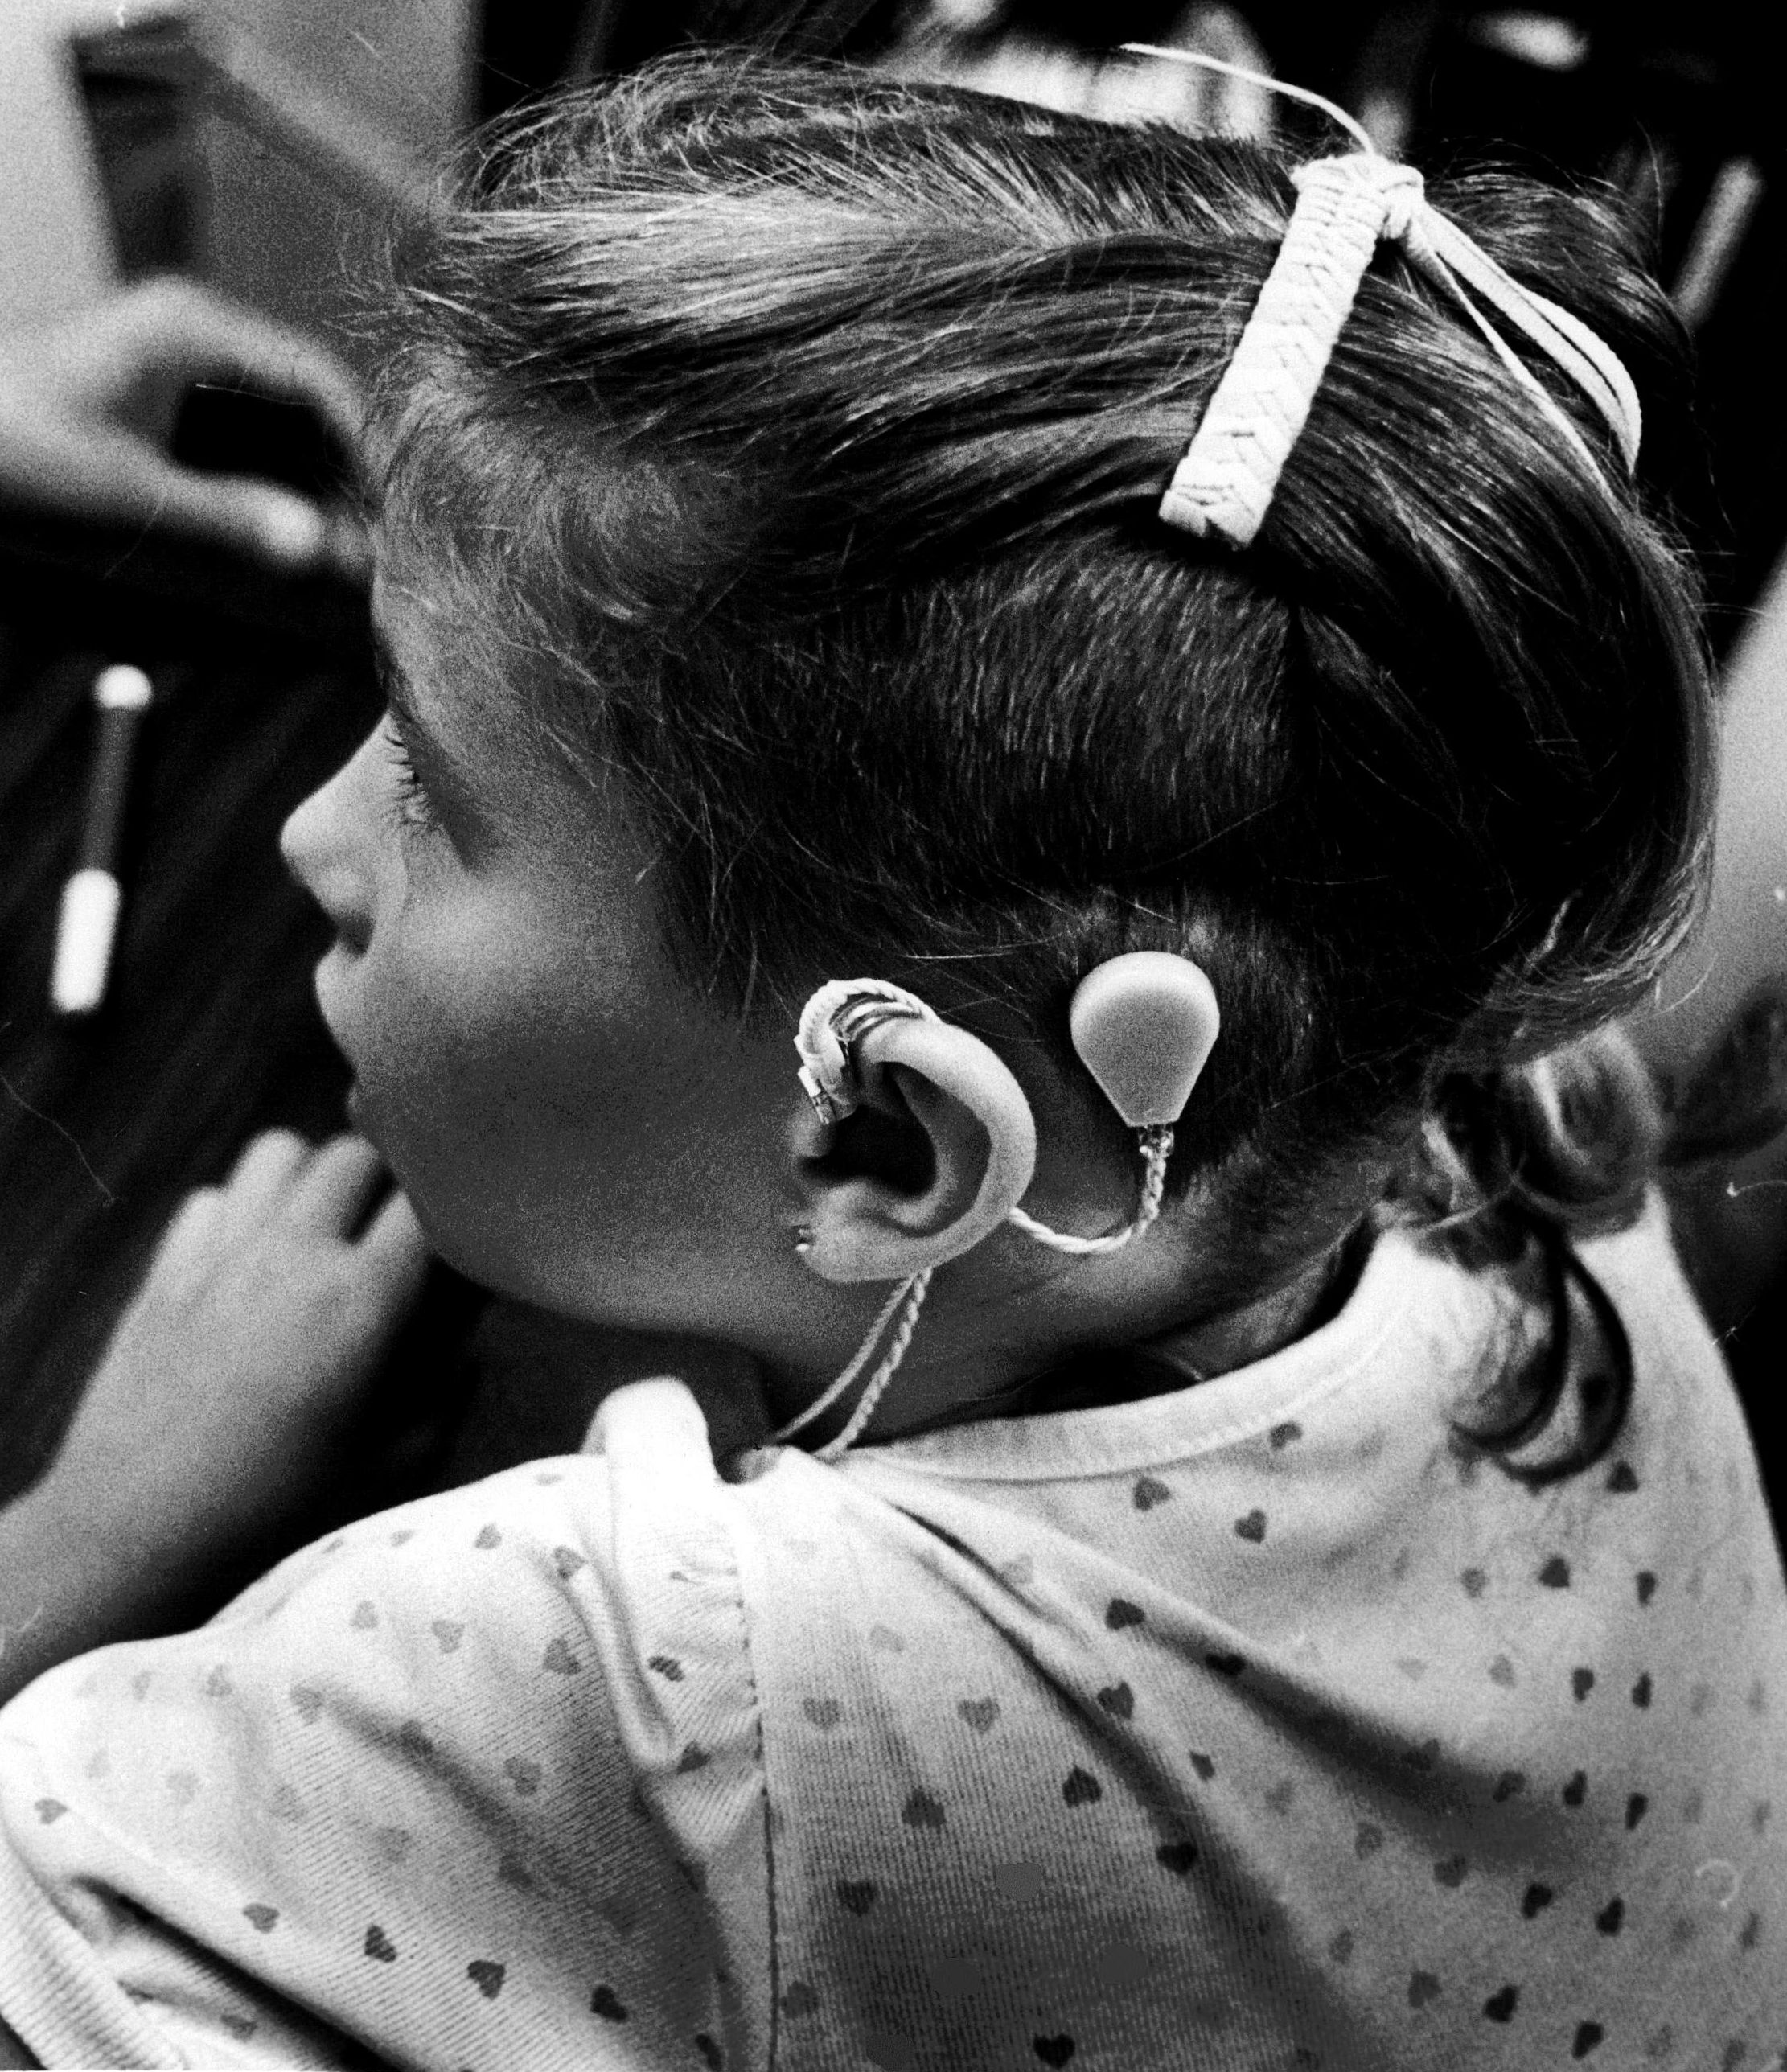 A child with an early cochlear implant on Aug. 24, 1984.